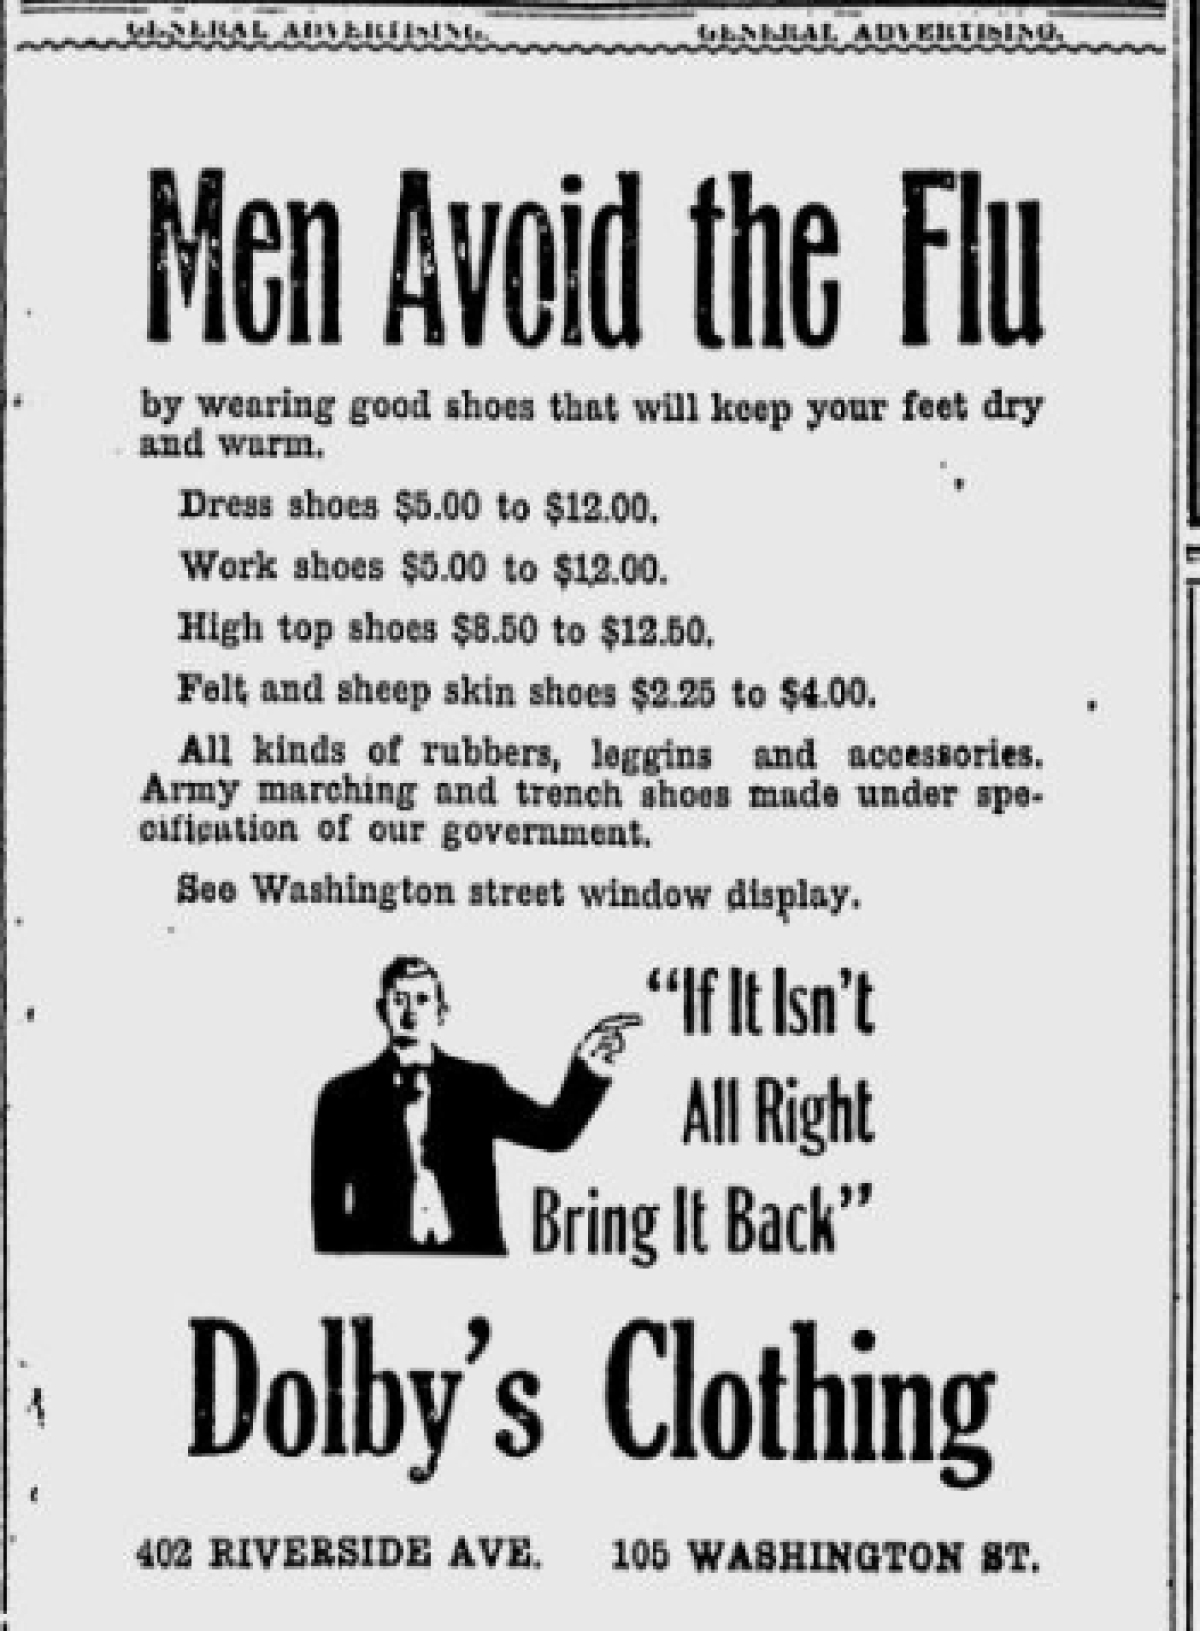 Dolby's Clothing